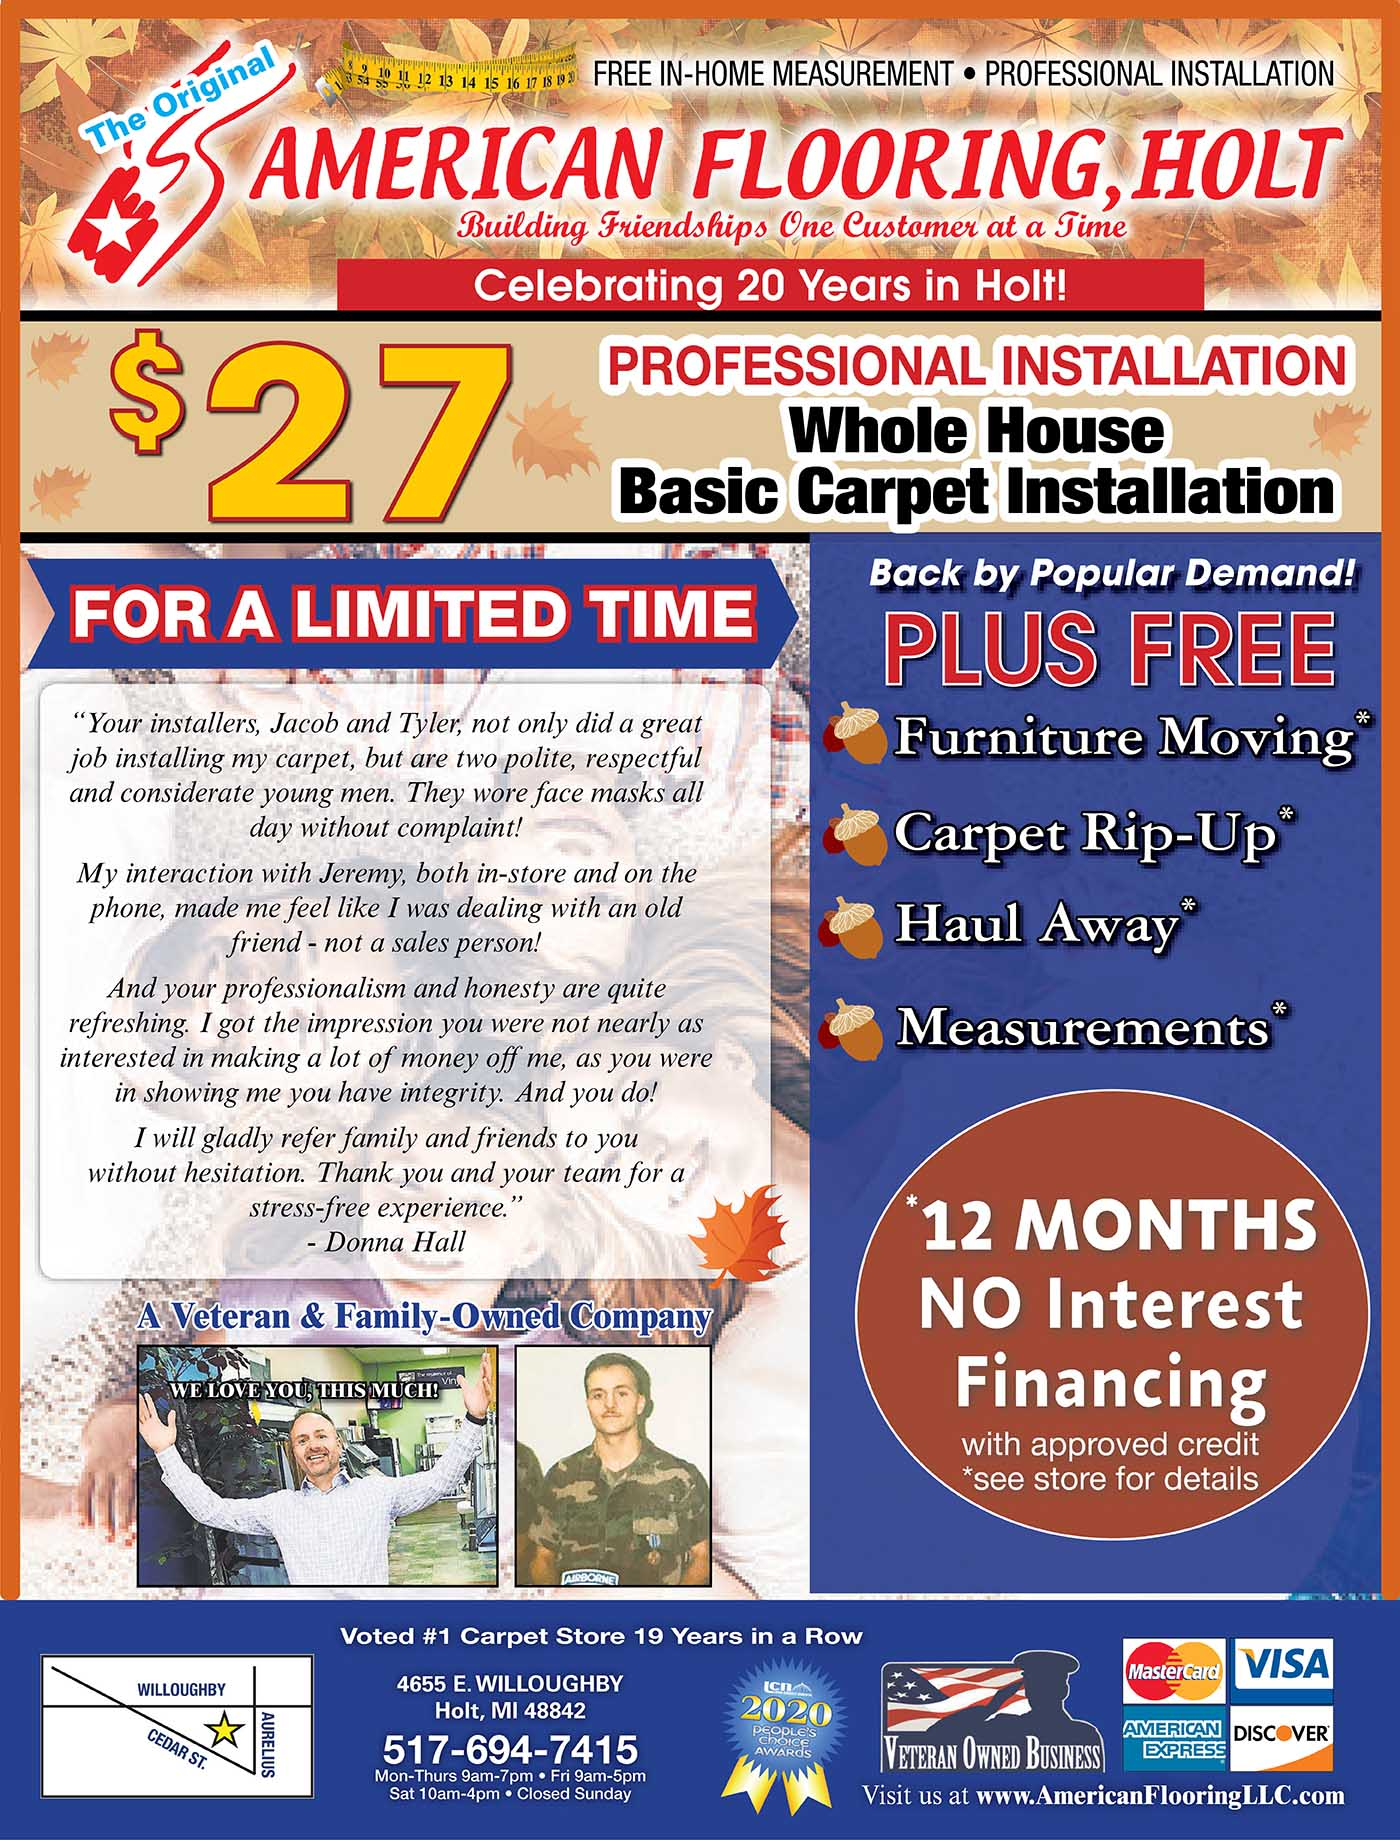 American Flooring National Gold Tag Sale in Holt, MI